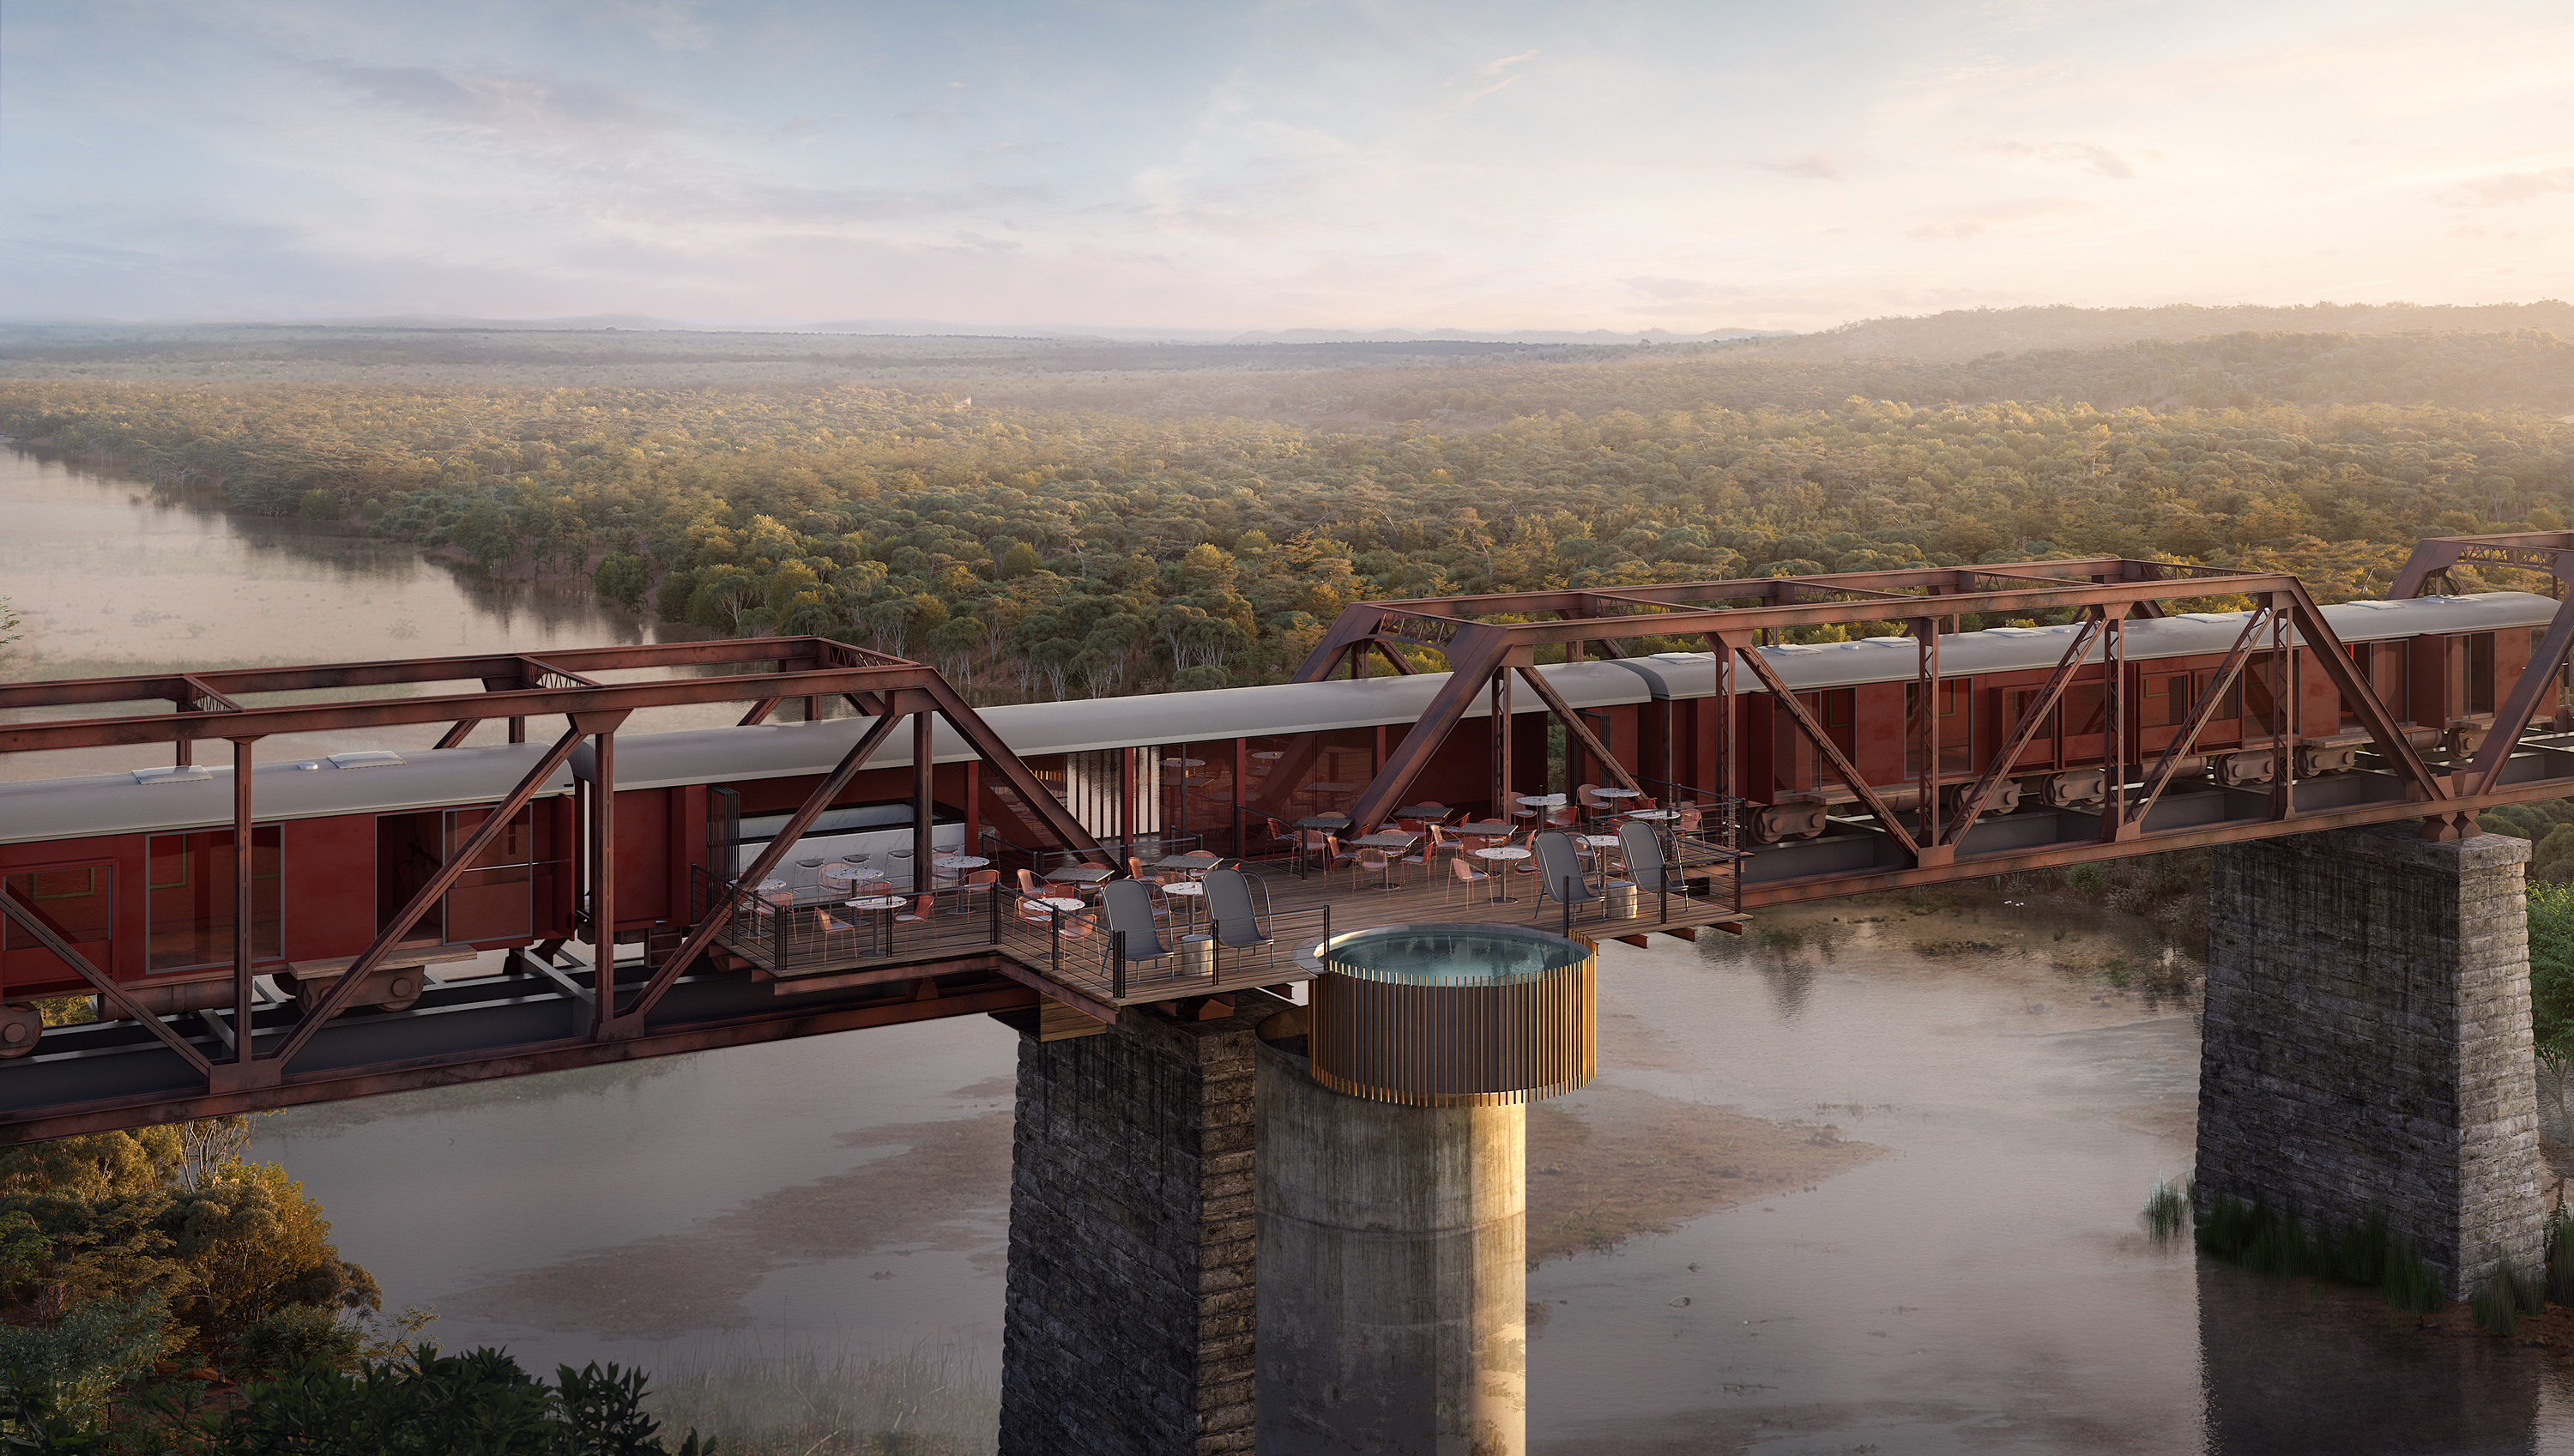 An incredible train hotel is opening in South Africa